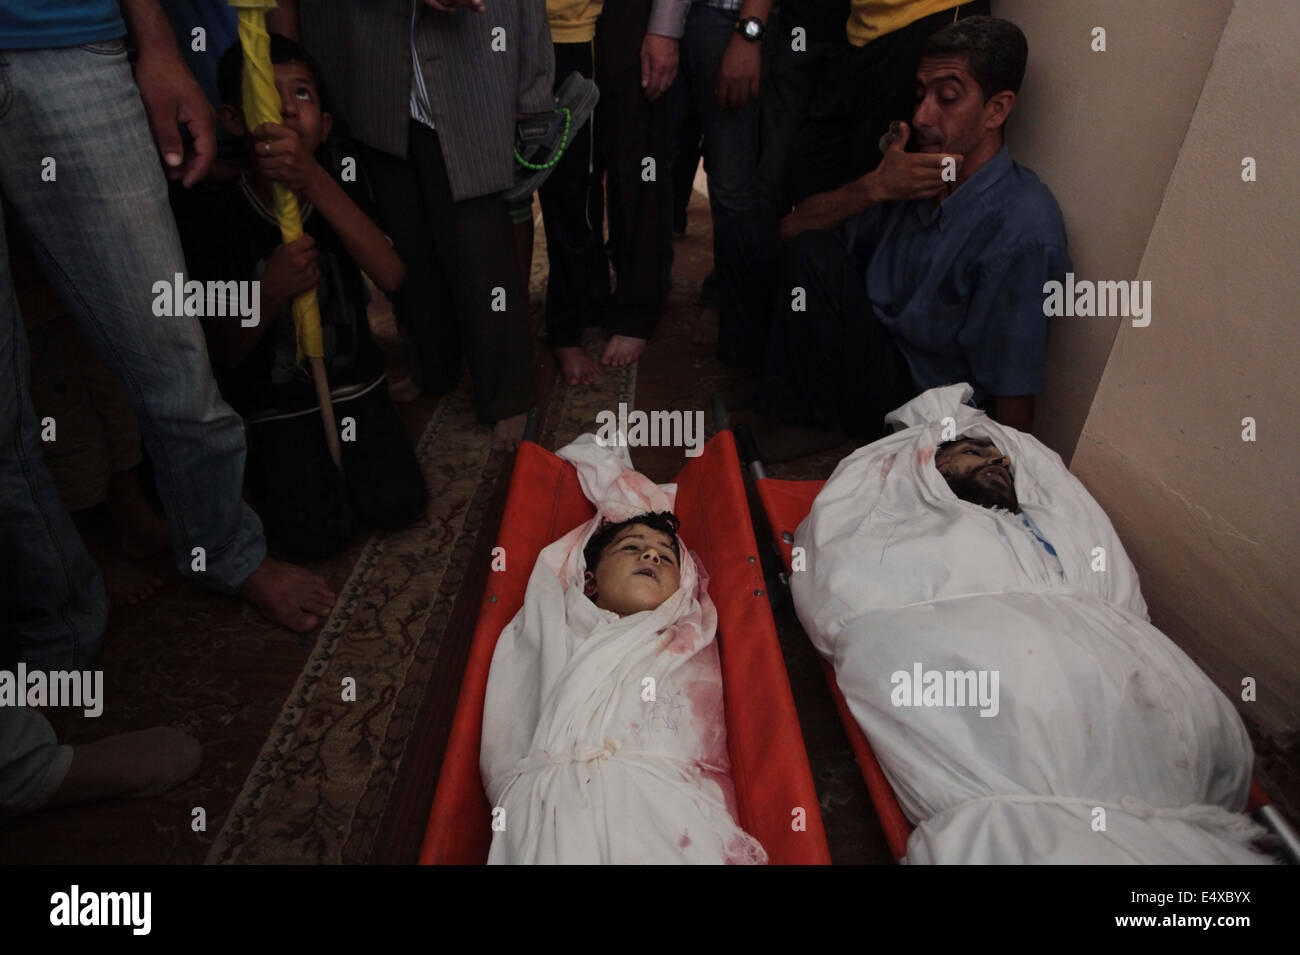 Khan Younis, Gaza Strip, Palestinian Territory. 17th July, 2014. Palestinian mourners and family members mourn over - Stock Image